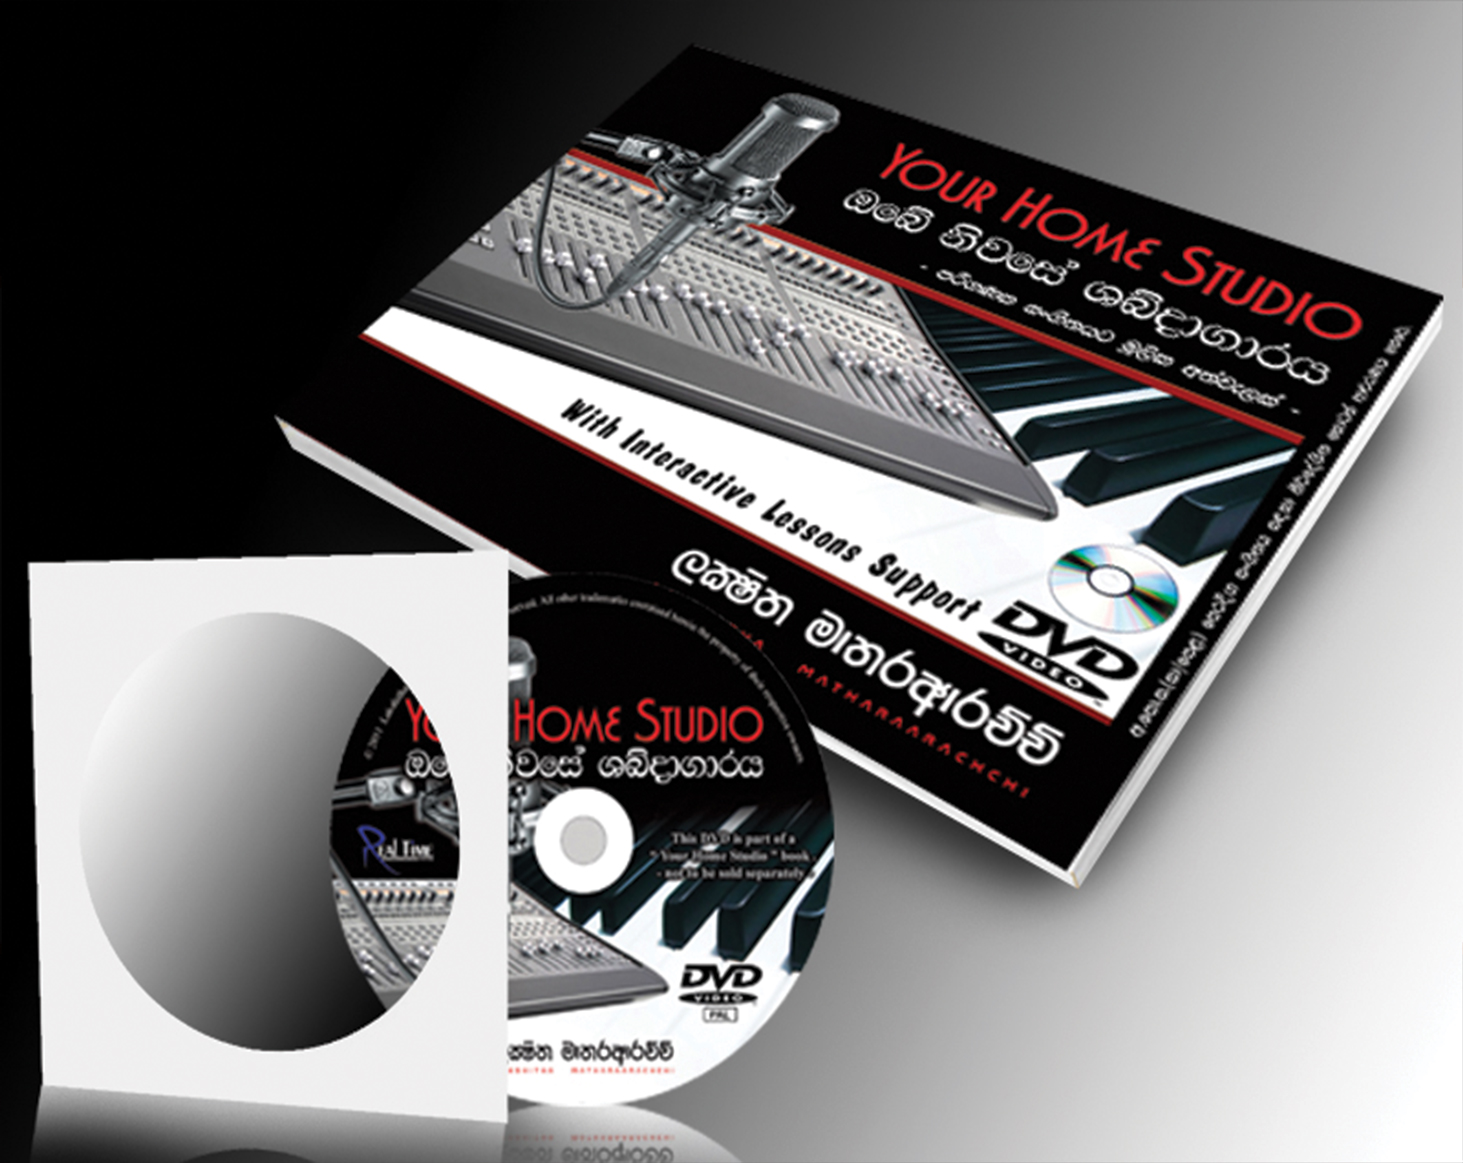 Your-Home-Studio---DVD-&-BOOK